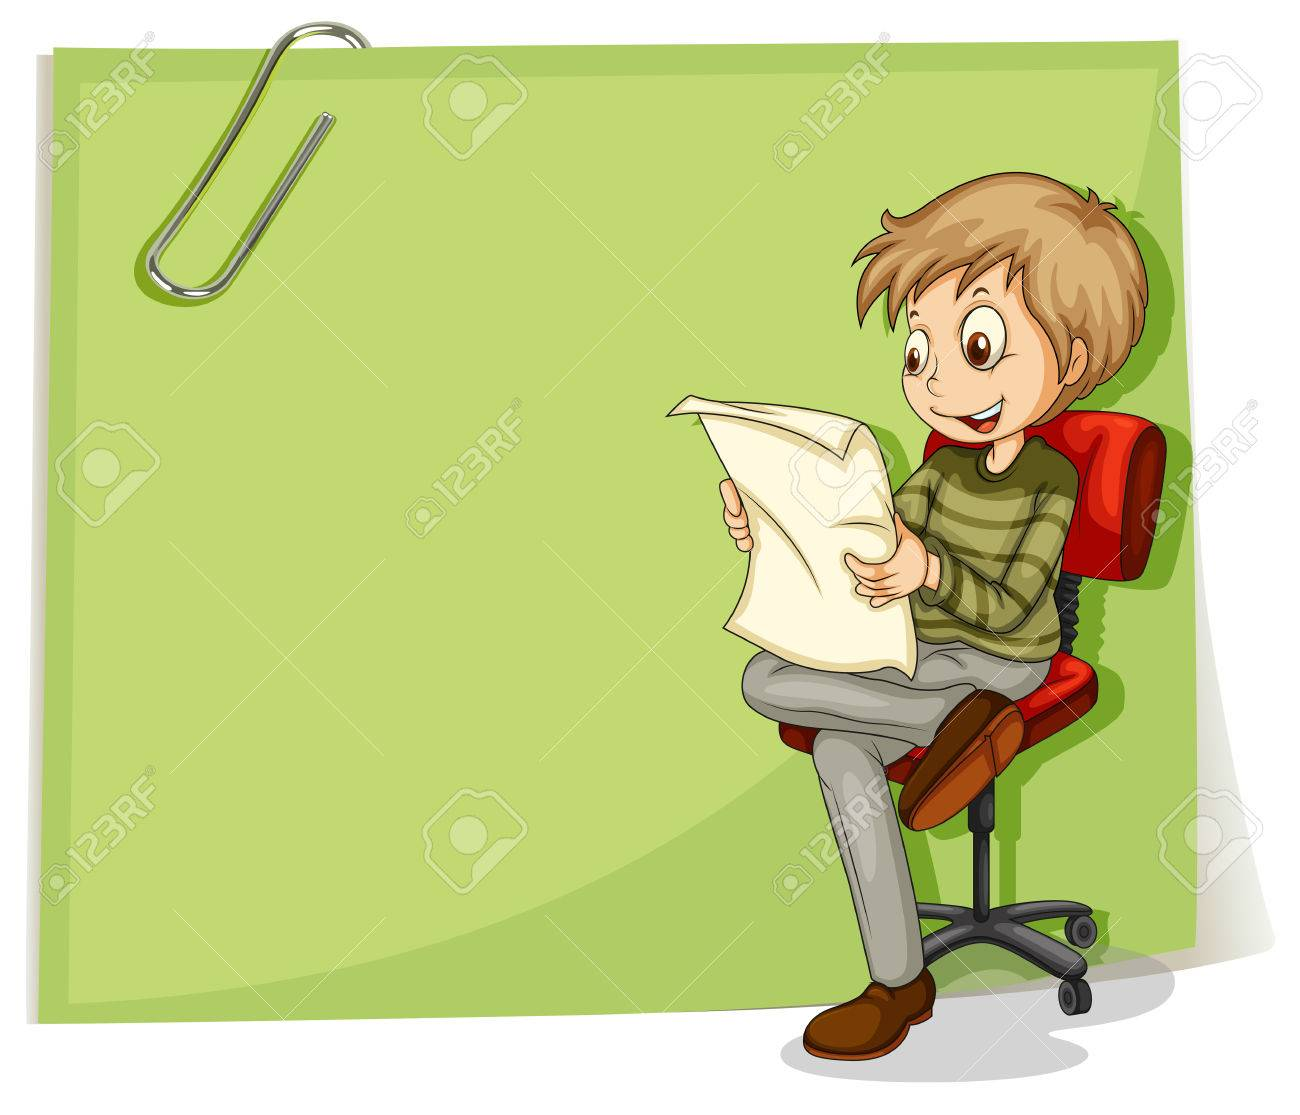 Illustration of a boy reading in front of a big paper with a clip on a white background Stock Vector - 22404849